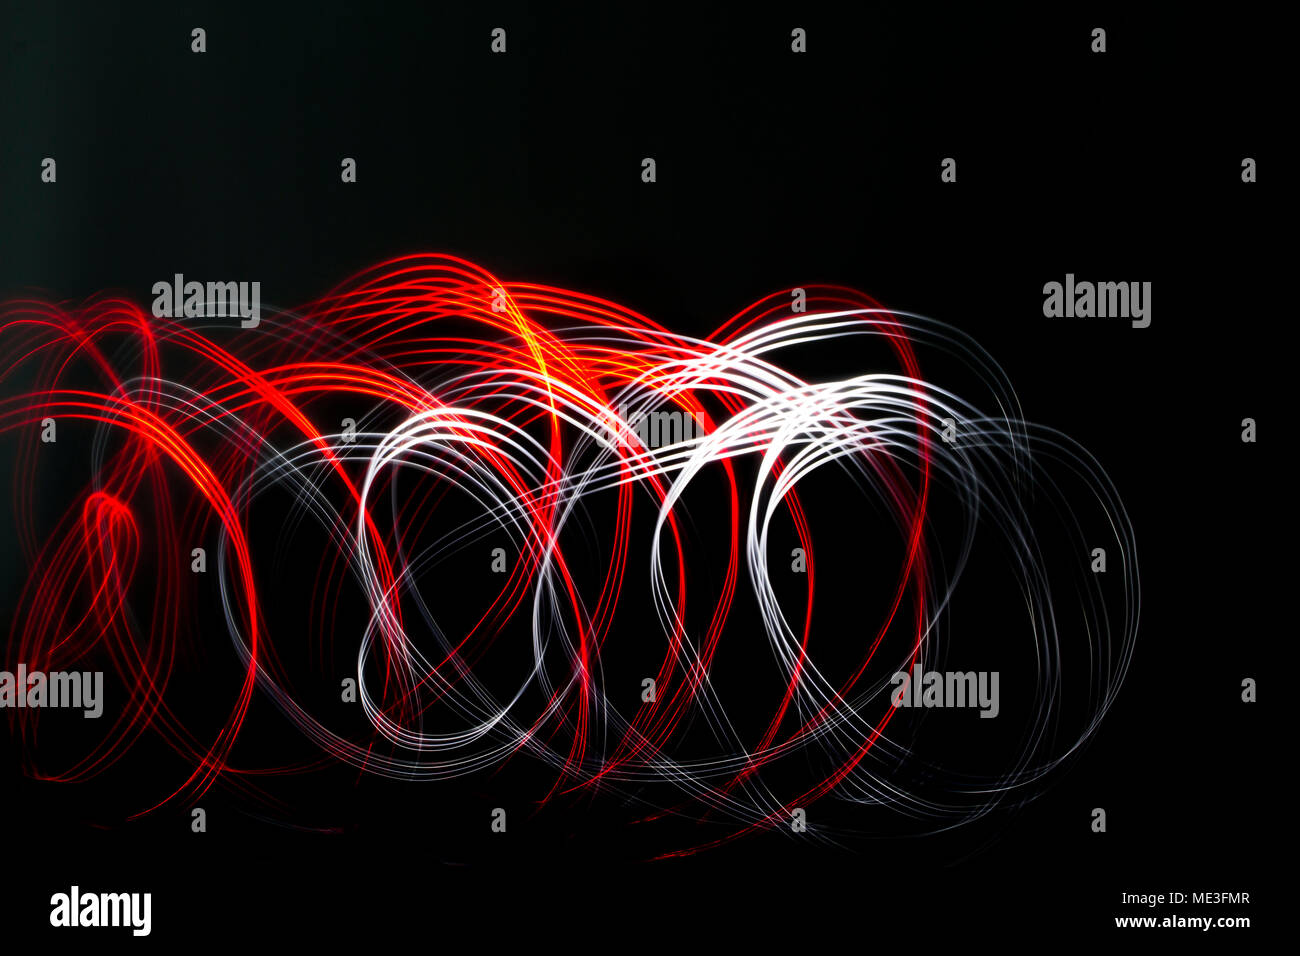 Light Painting with Professionalism - Stock Image